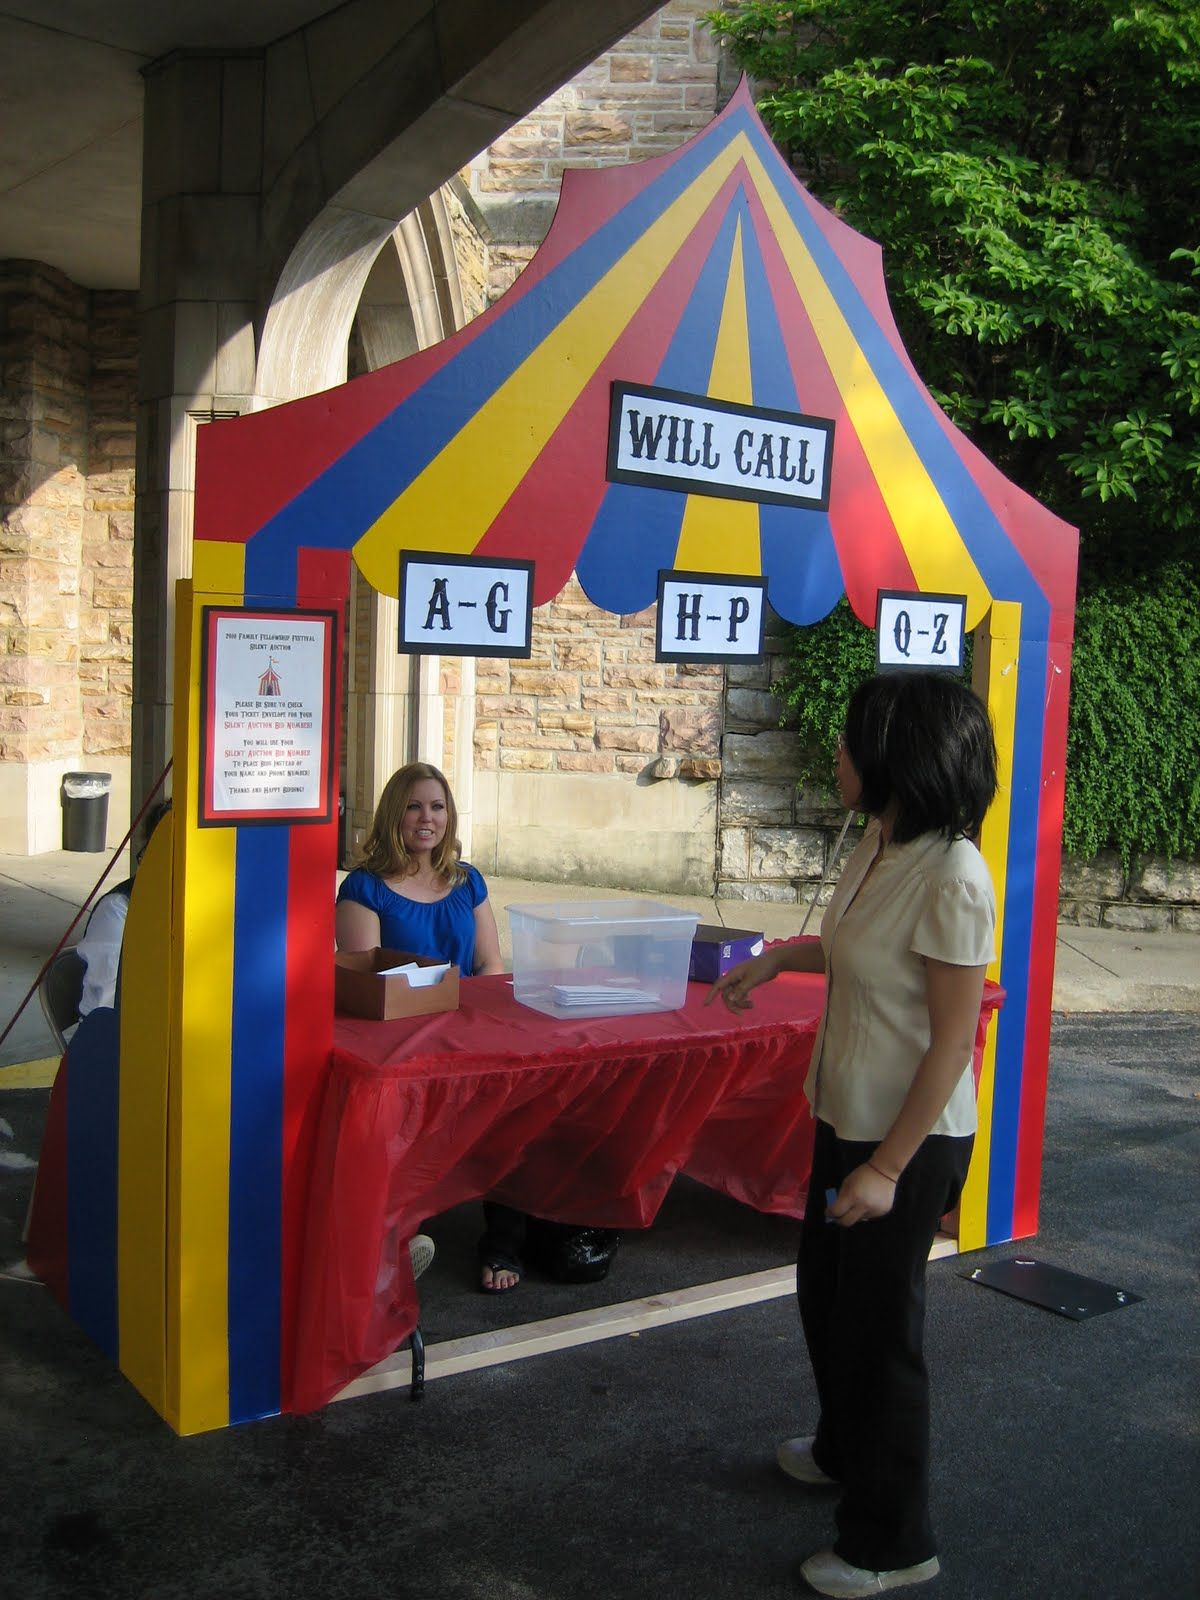 carnival booth designs made of wood | 1200px | Halloween Party Ideas